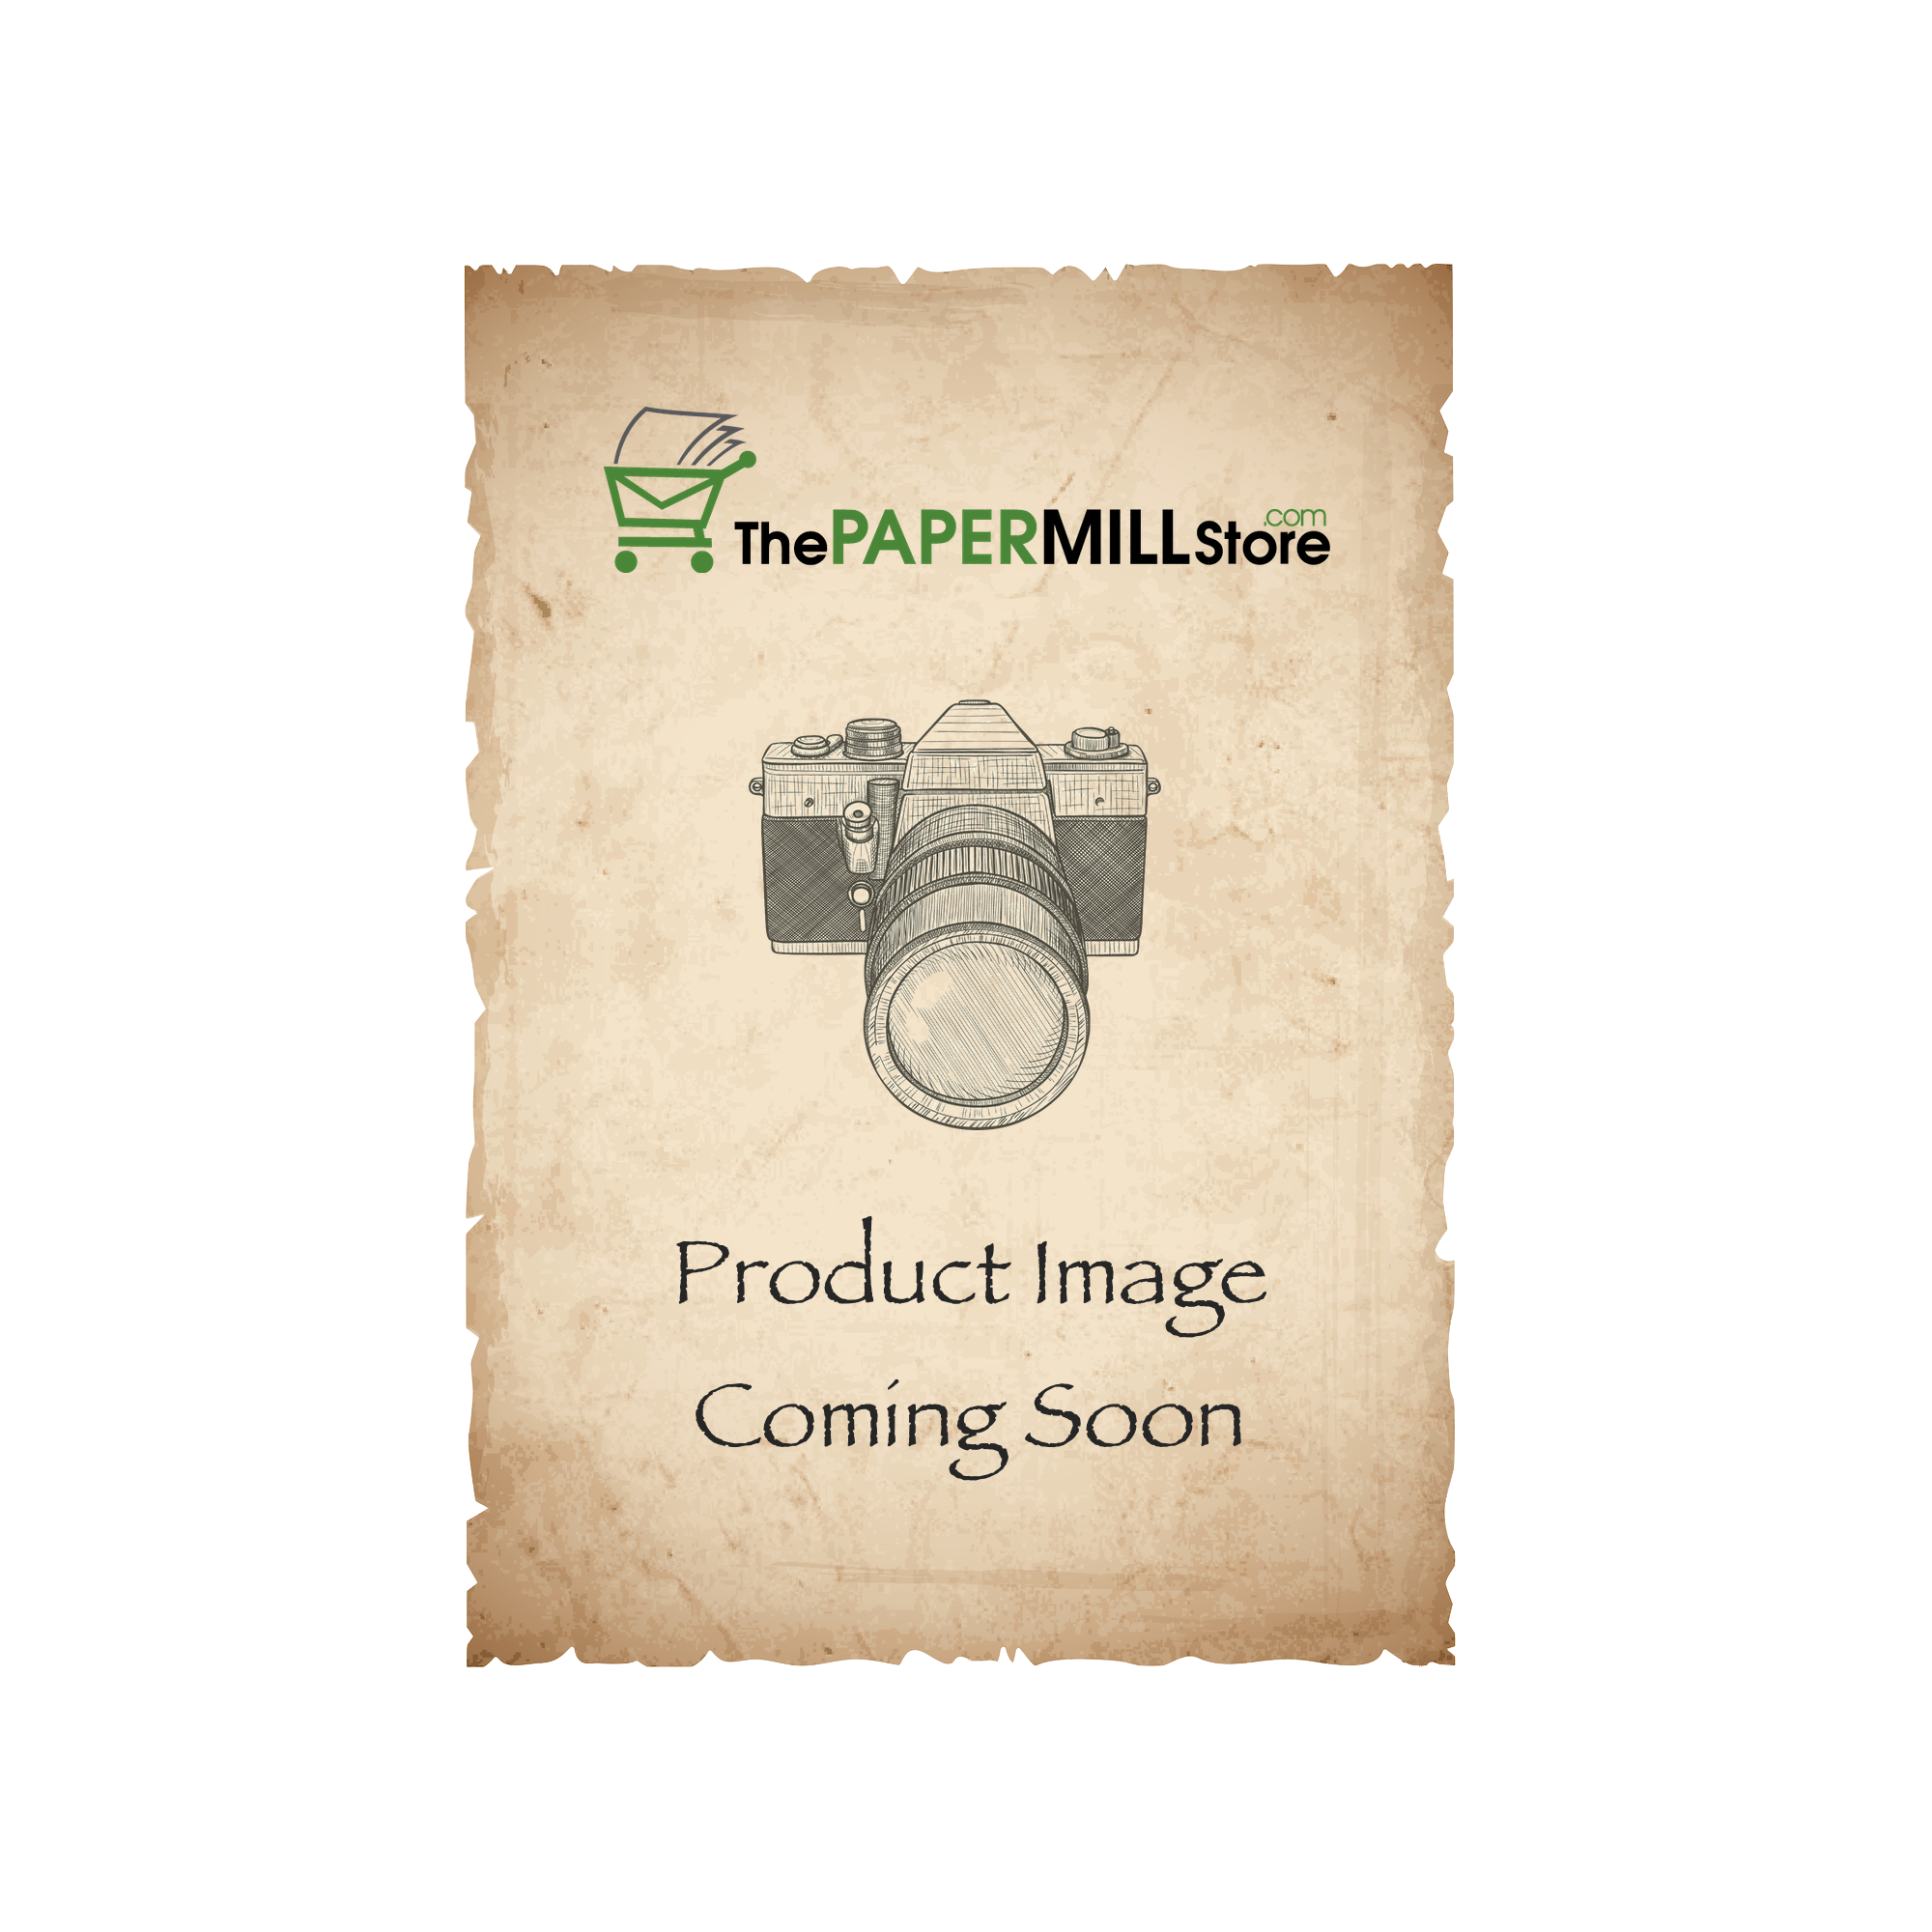 Loop Inxwell i-Tone Eco Cream Card Stock - 18 x 12 in 80 lb Cover Vellum  100% Recycled 250 per Package